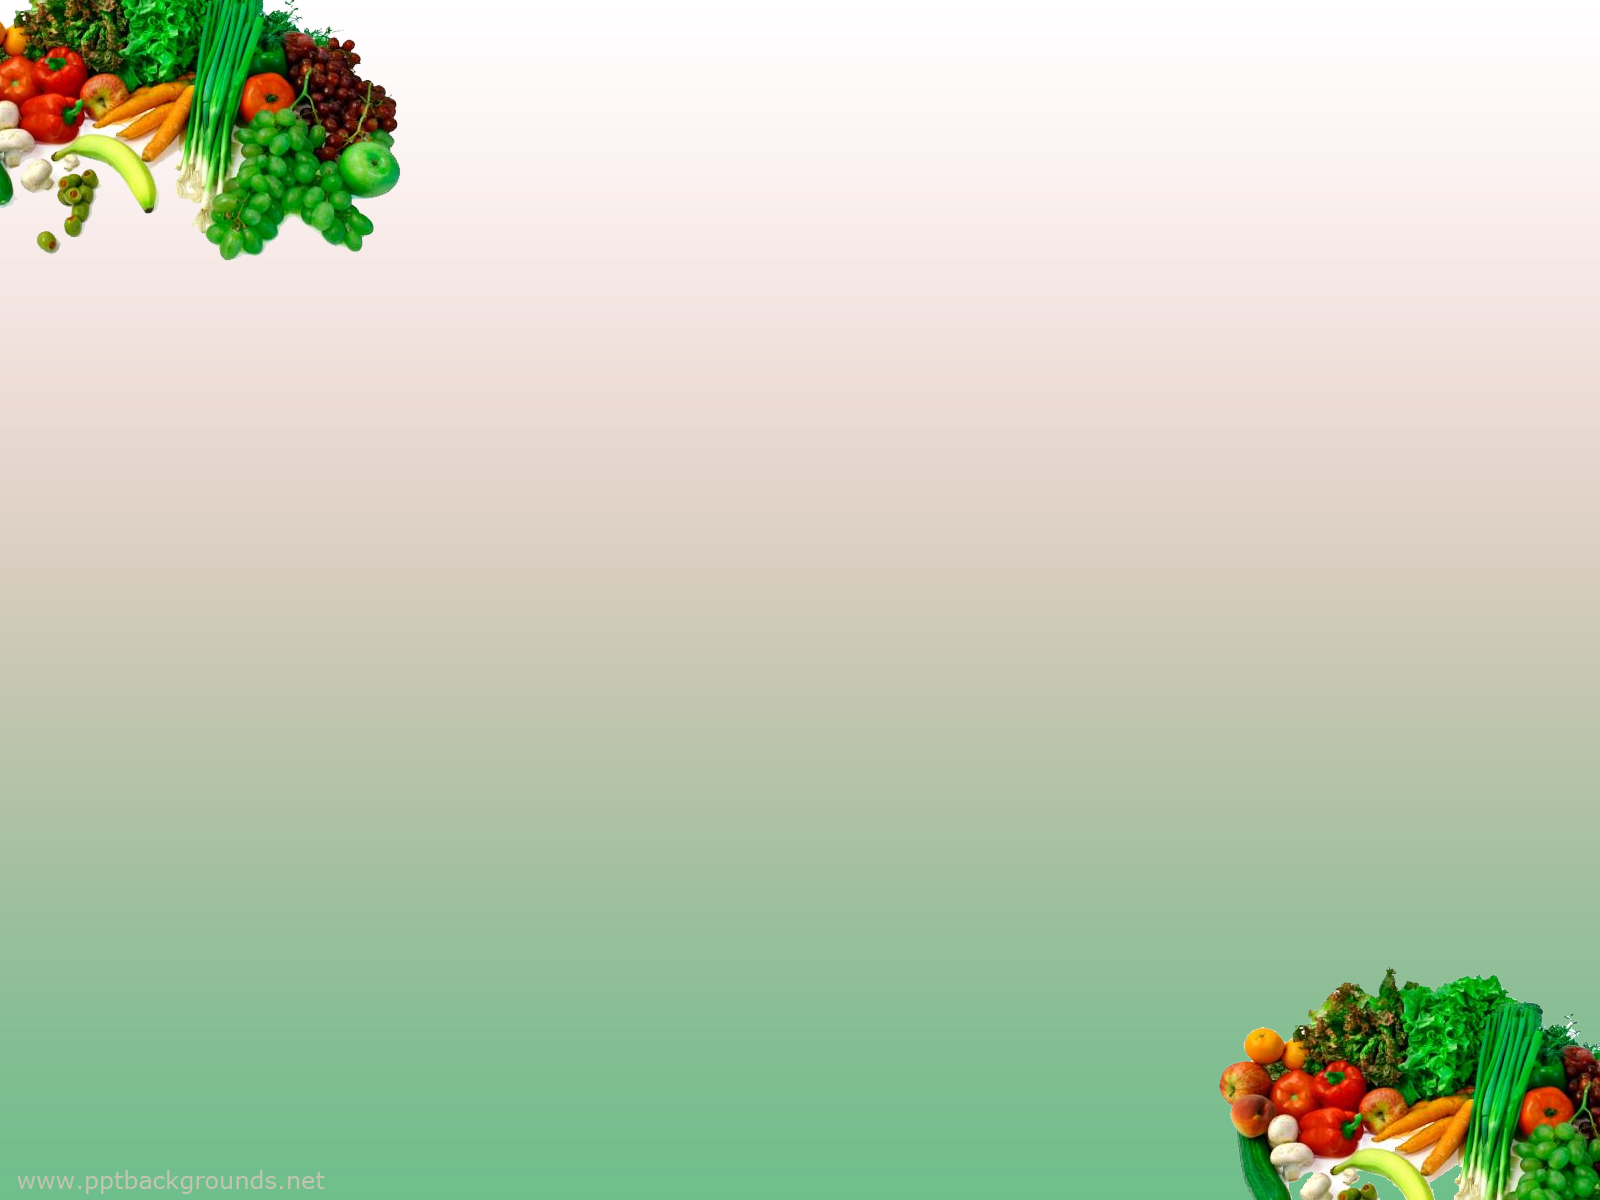 Fruits And Vegetables Backgrounds For PowerPoint   Foods and 1600x1200